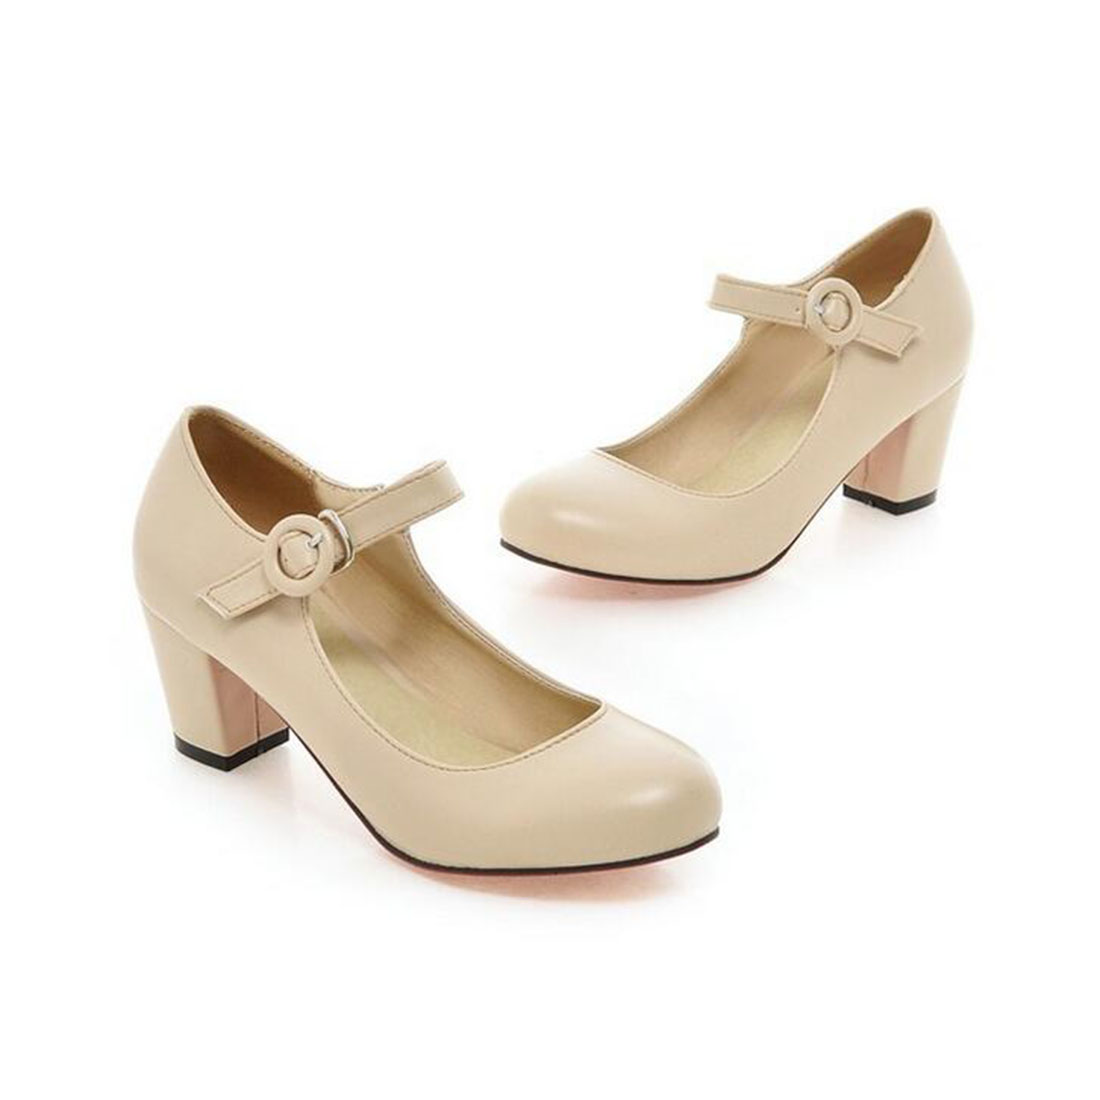 Hot sale Meotina Women Shoes Mary Jane Ladies High Heels White Wedding Shoes Thick Heel Pumps Lady Shoes Black Pink Beige